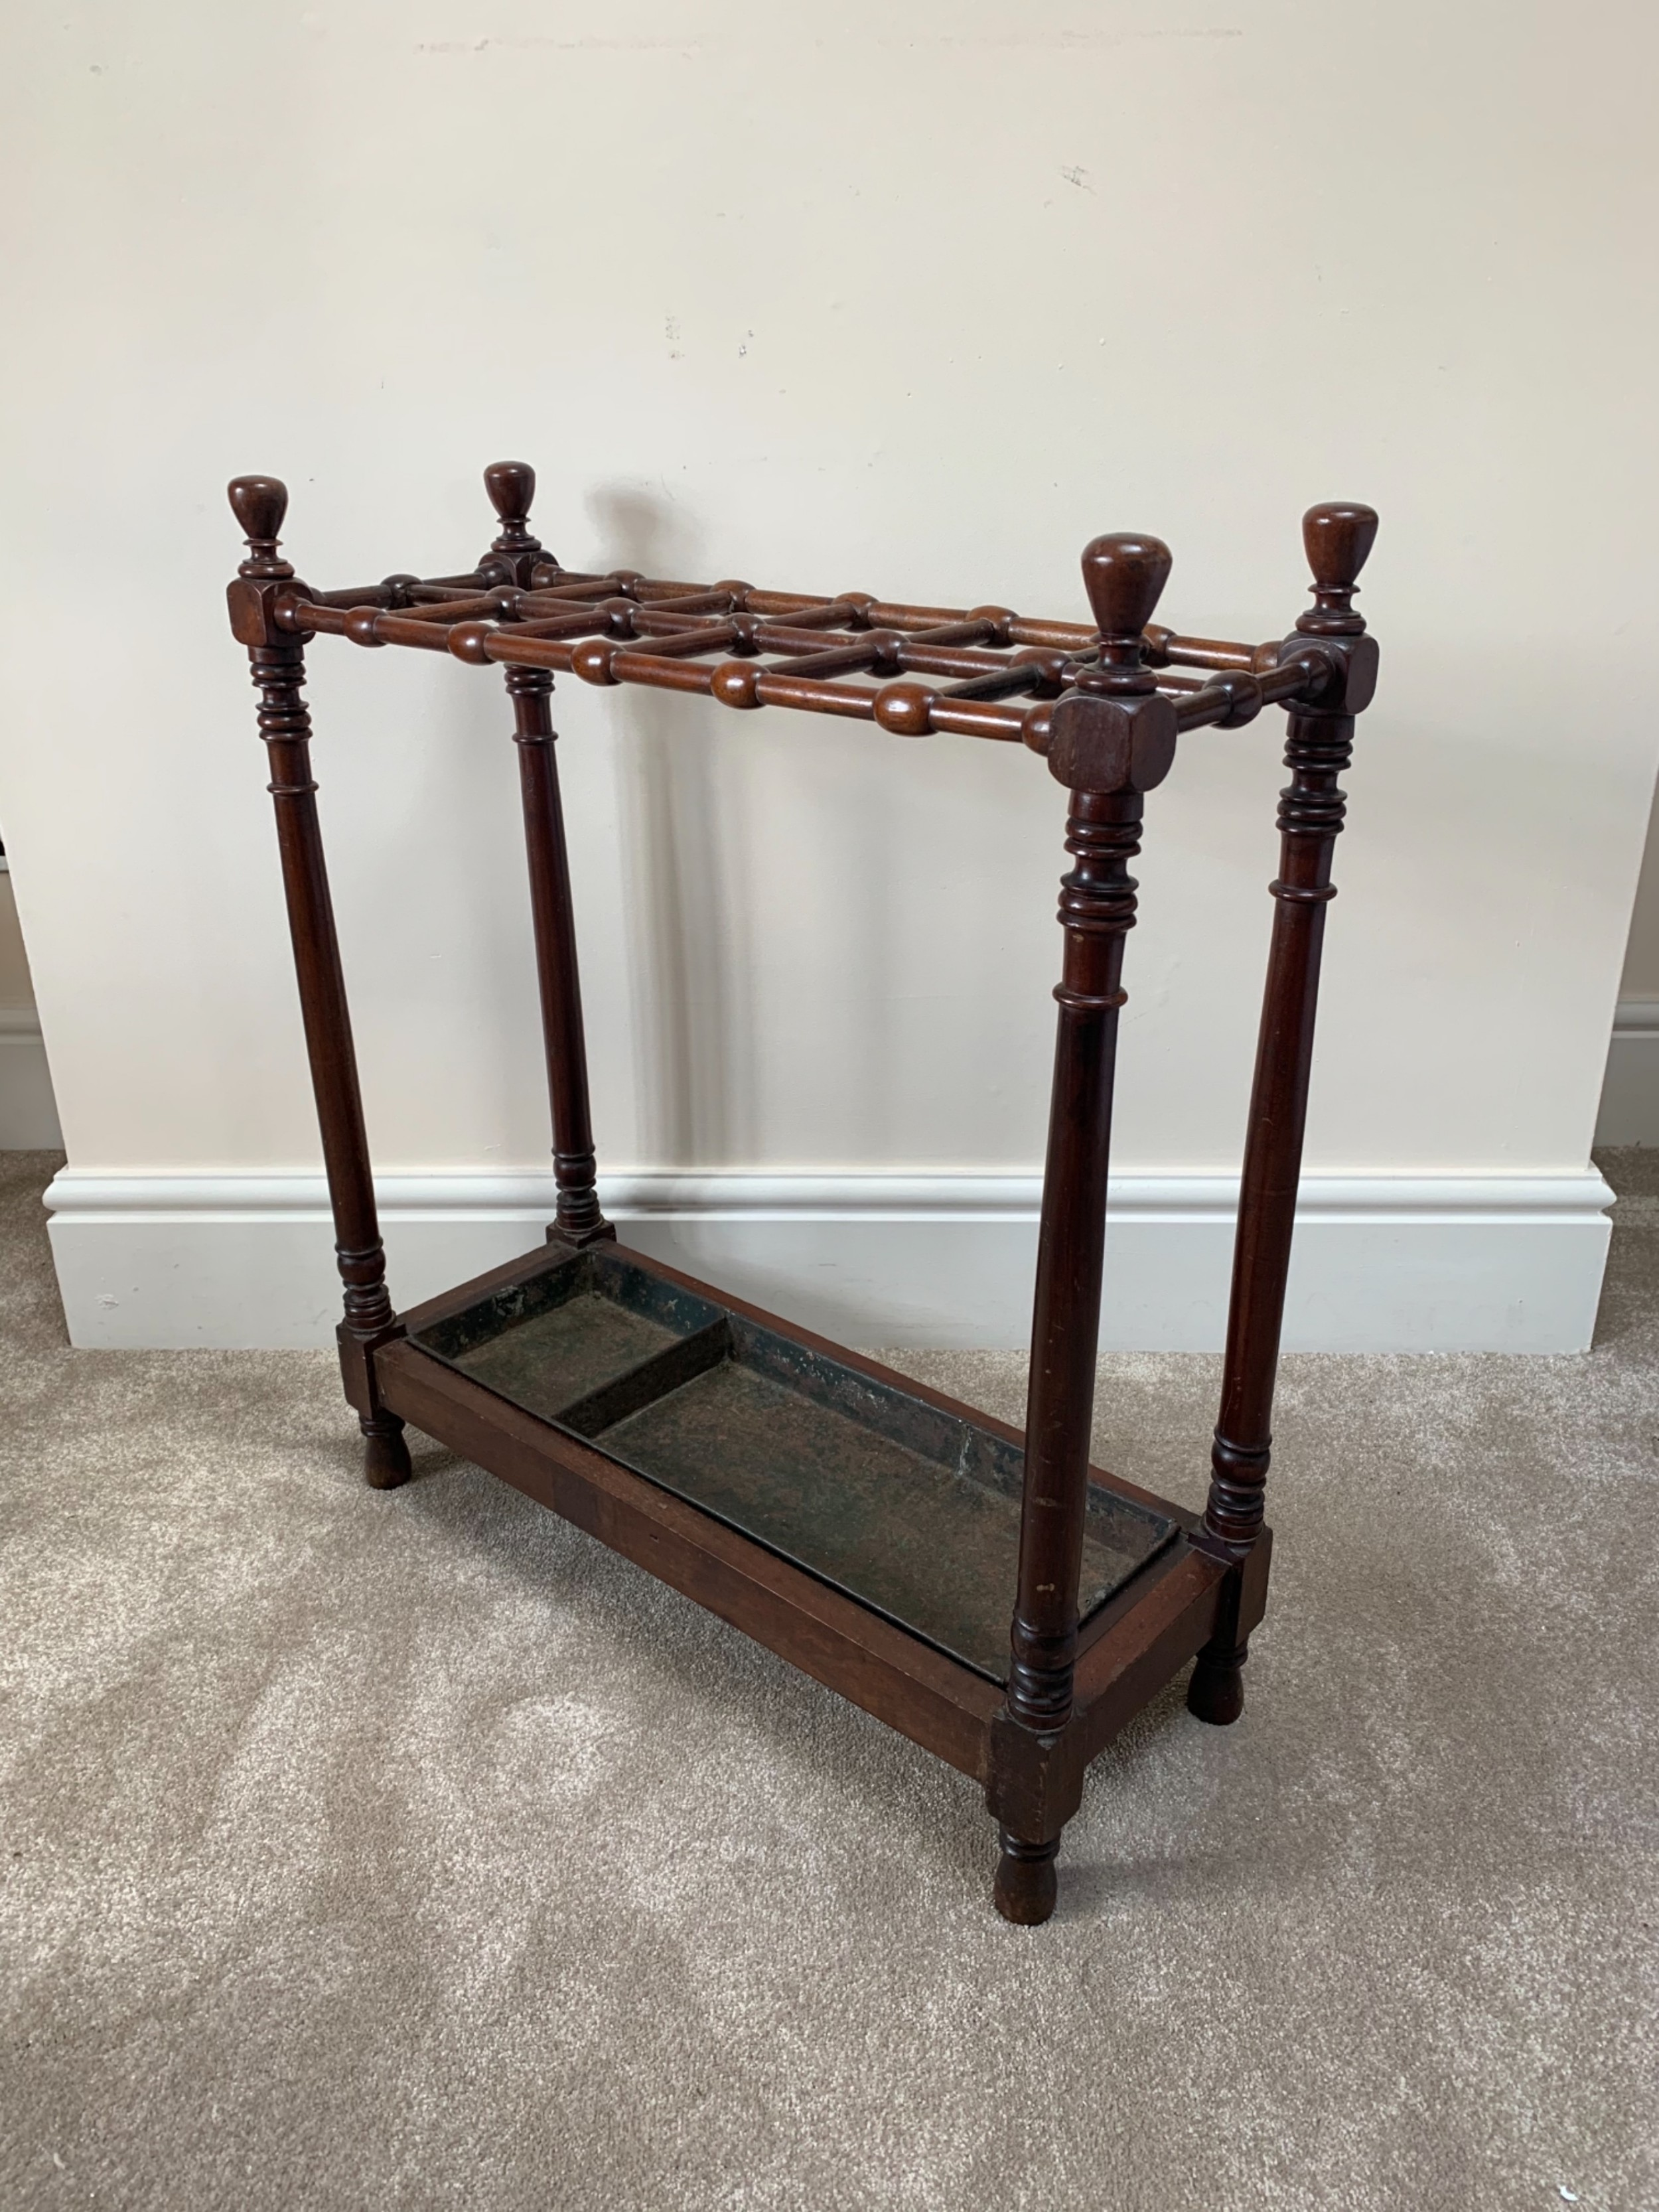 geo iv 12 division country house umbrellastick stand